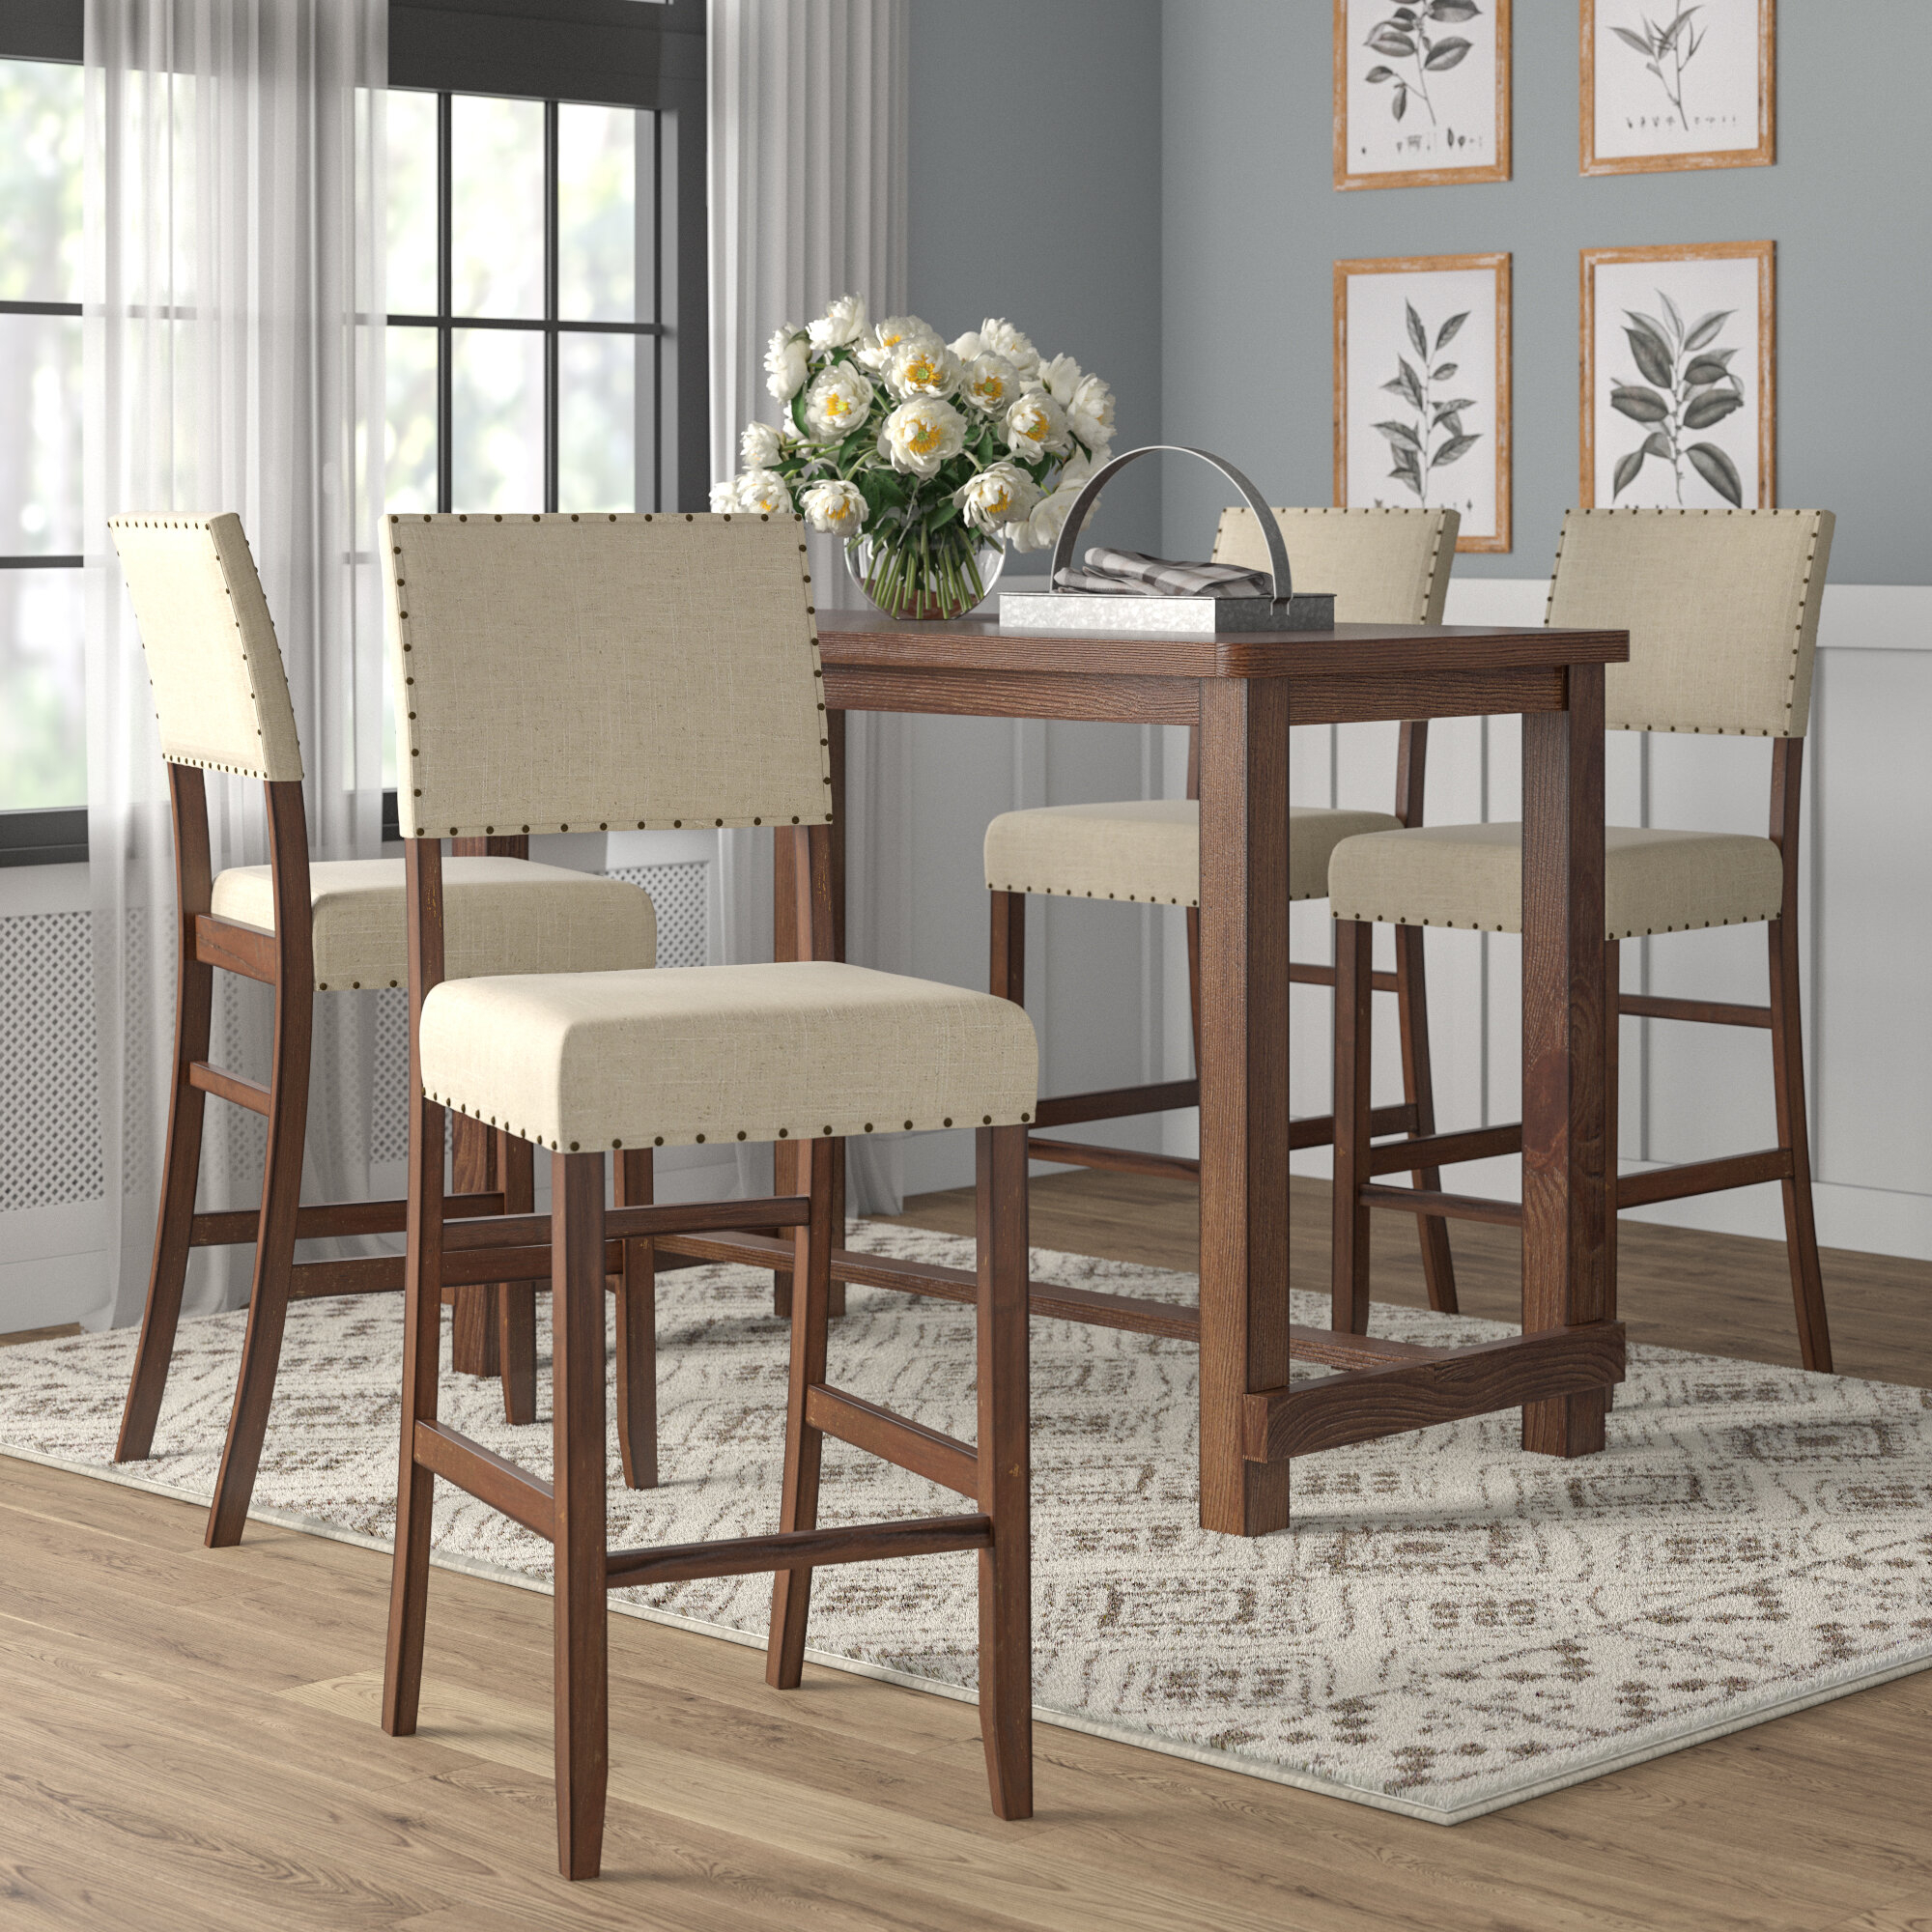 Orth 5 Piece Counter Height Dining Set Pertaining To Current Cincinnati 3 Piece Dining Sets (View 6 of 20)